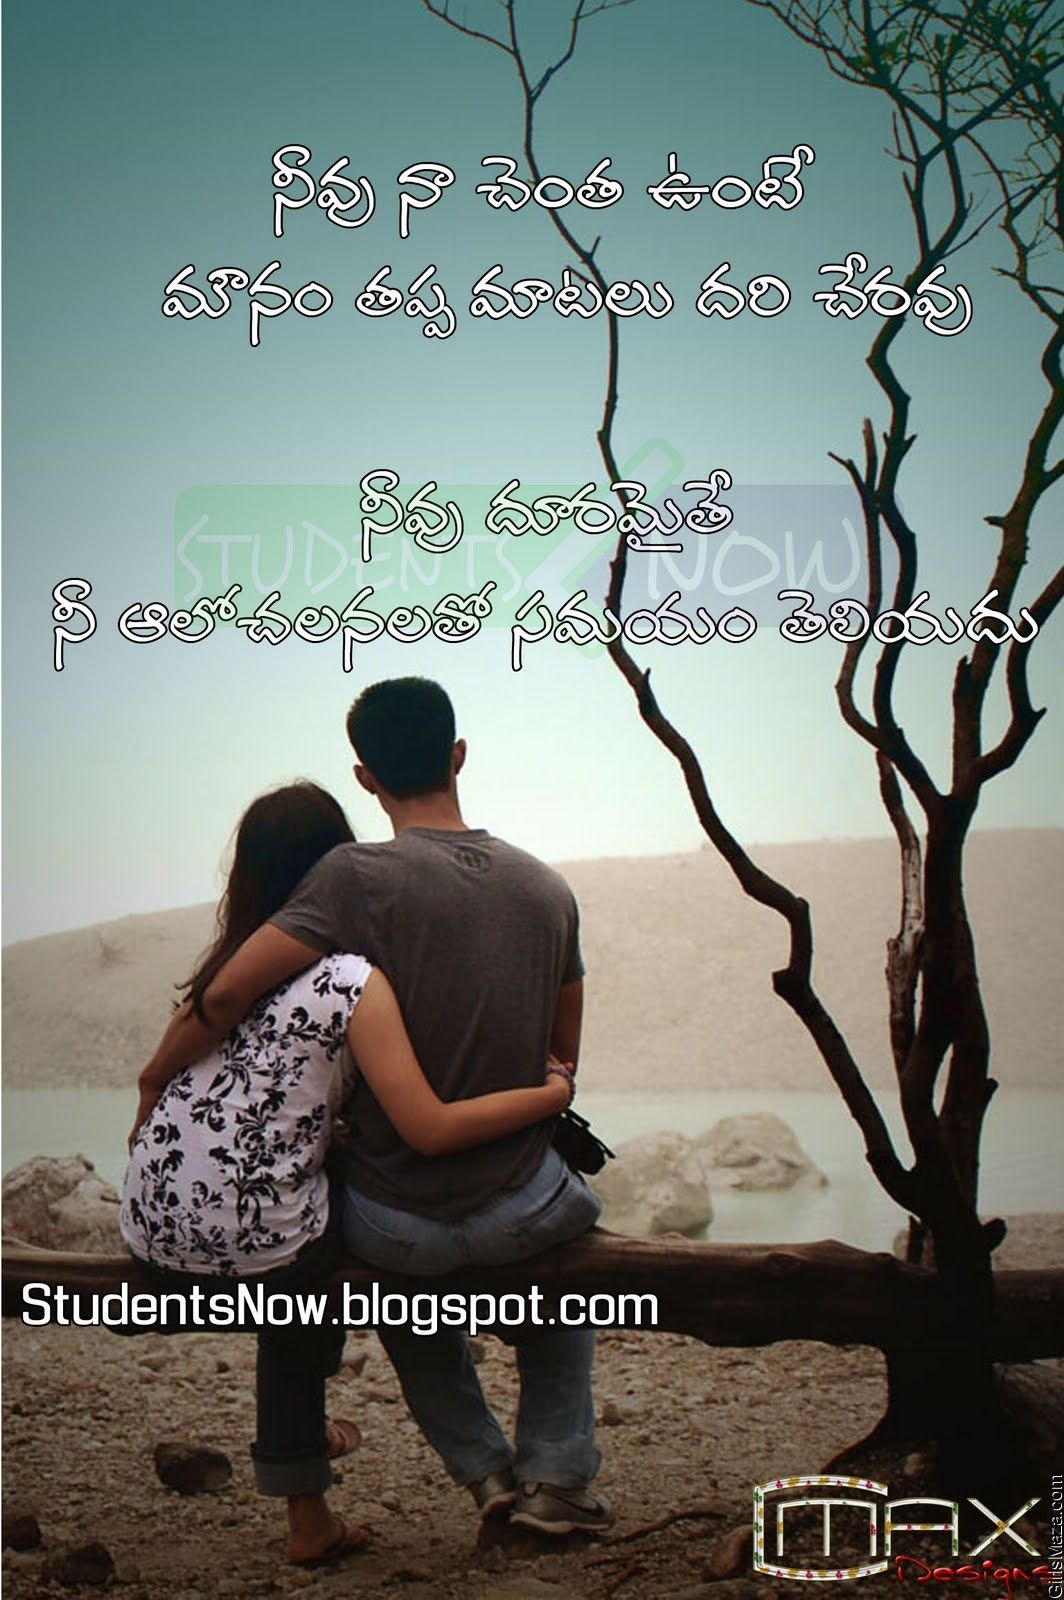 I Love You Quotes Malayalam : love quotes for her in malayalam qv8IiscQ4 in love quotes ...